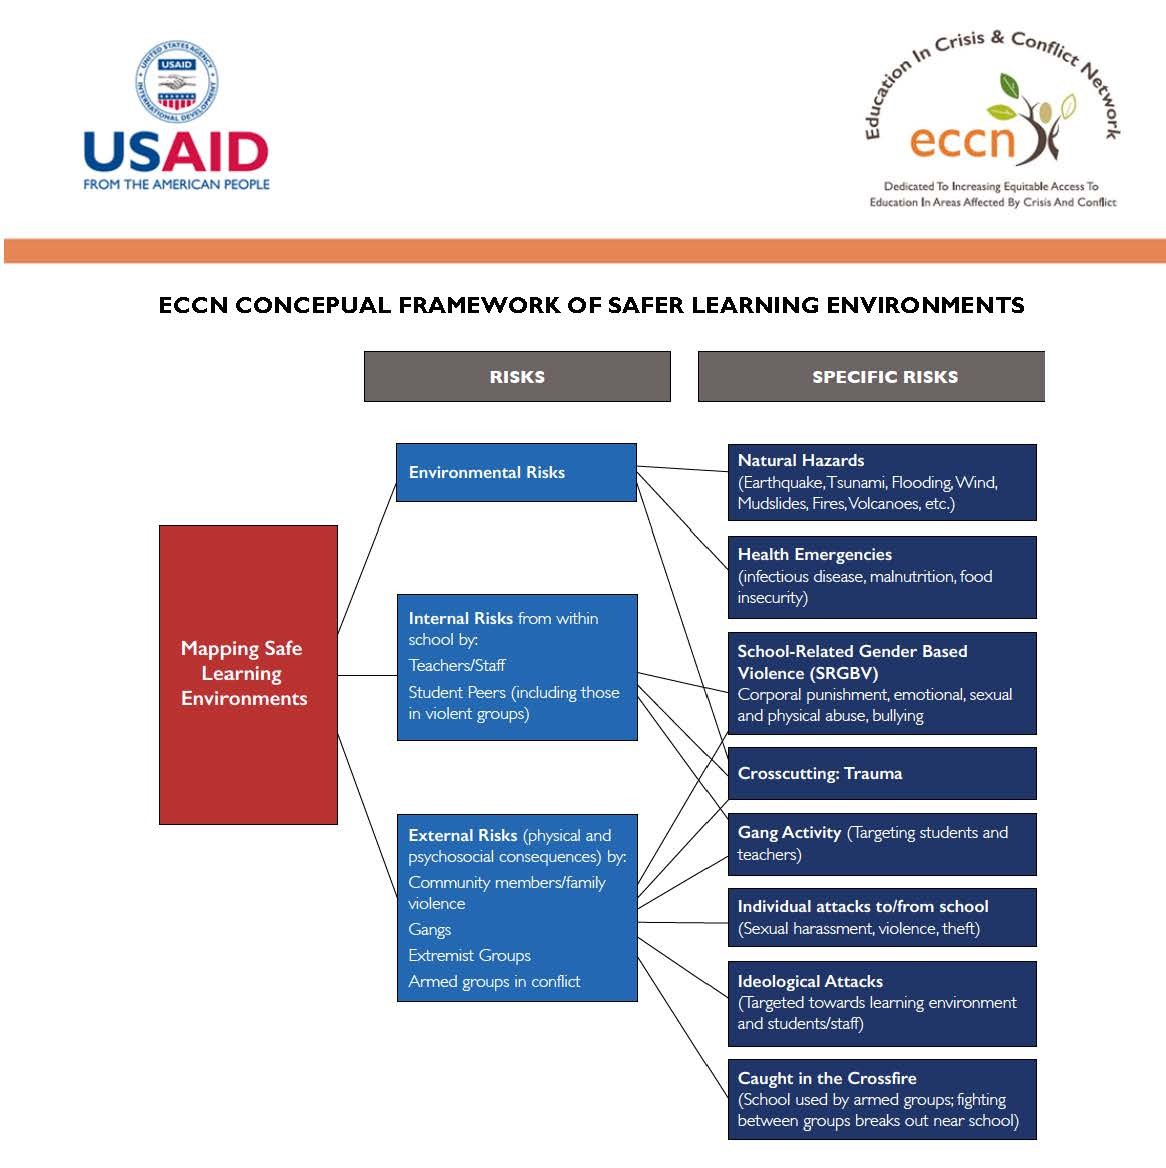 Screenshot of ECCN Conceptual Framework of Safer Learning Environments